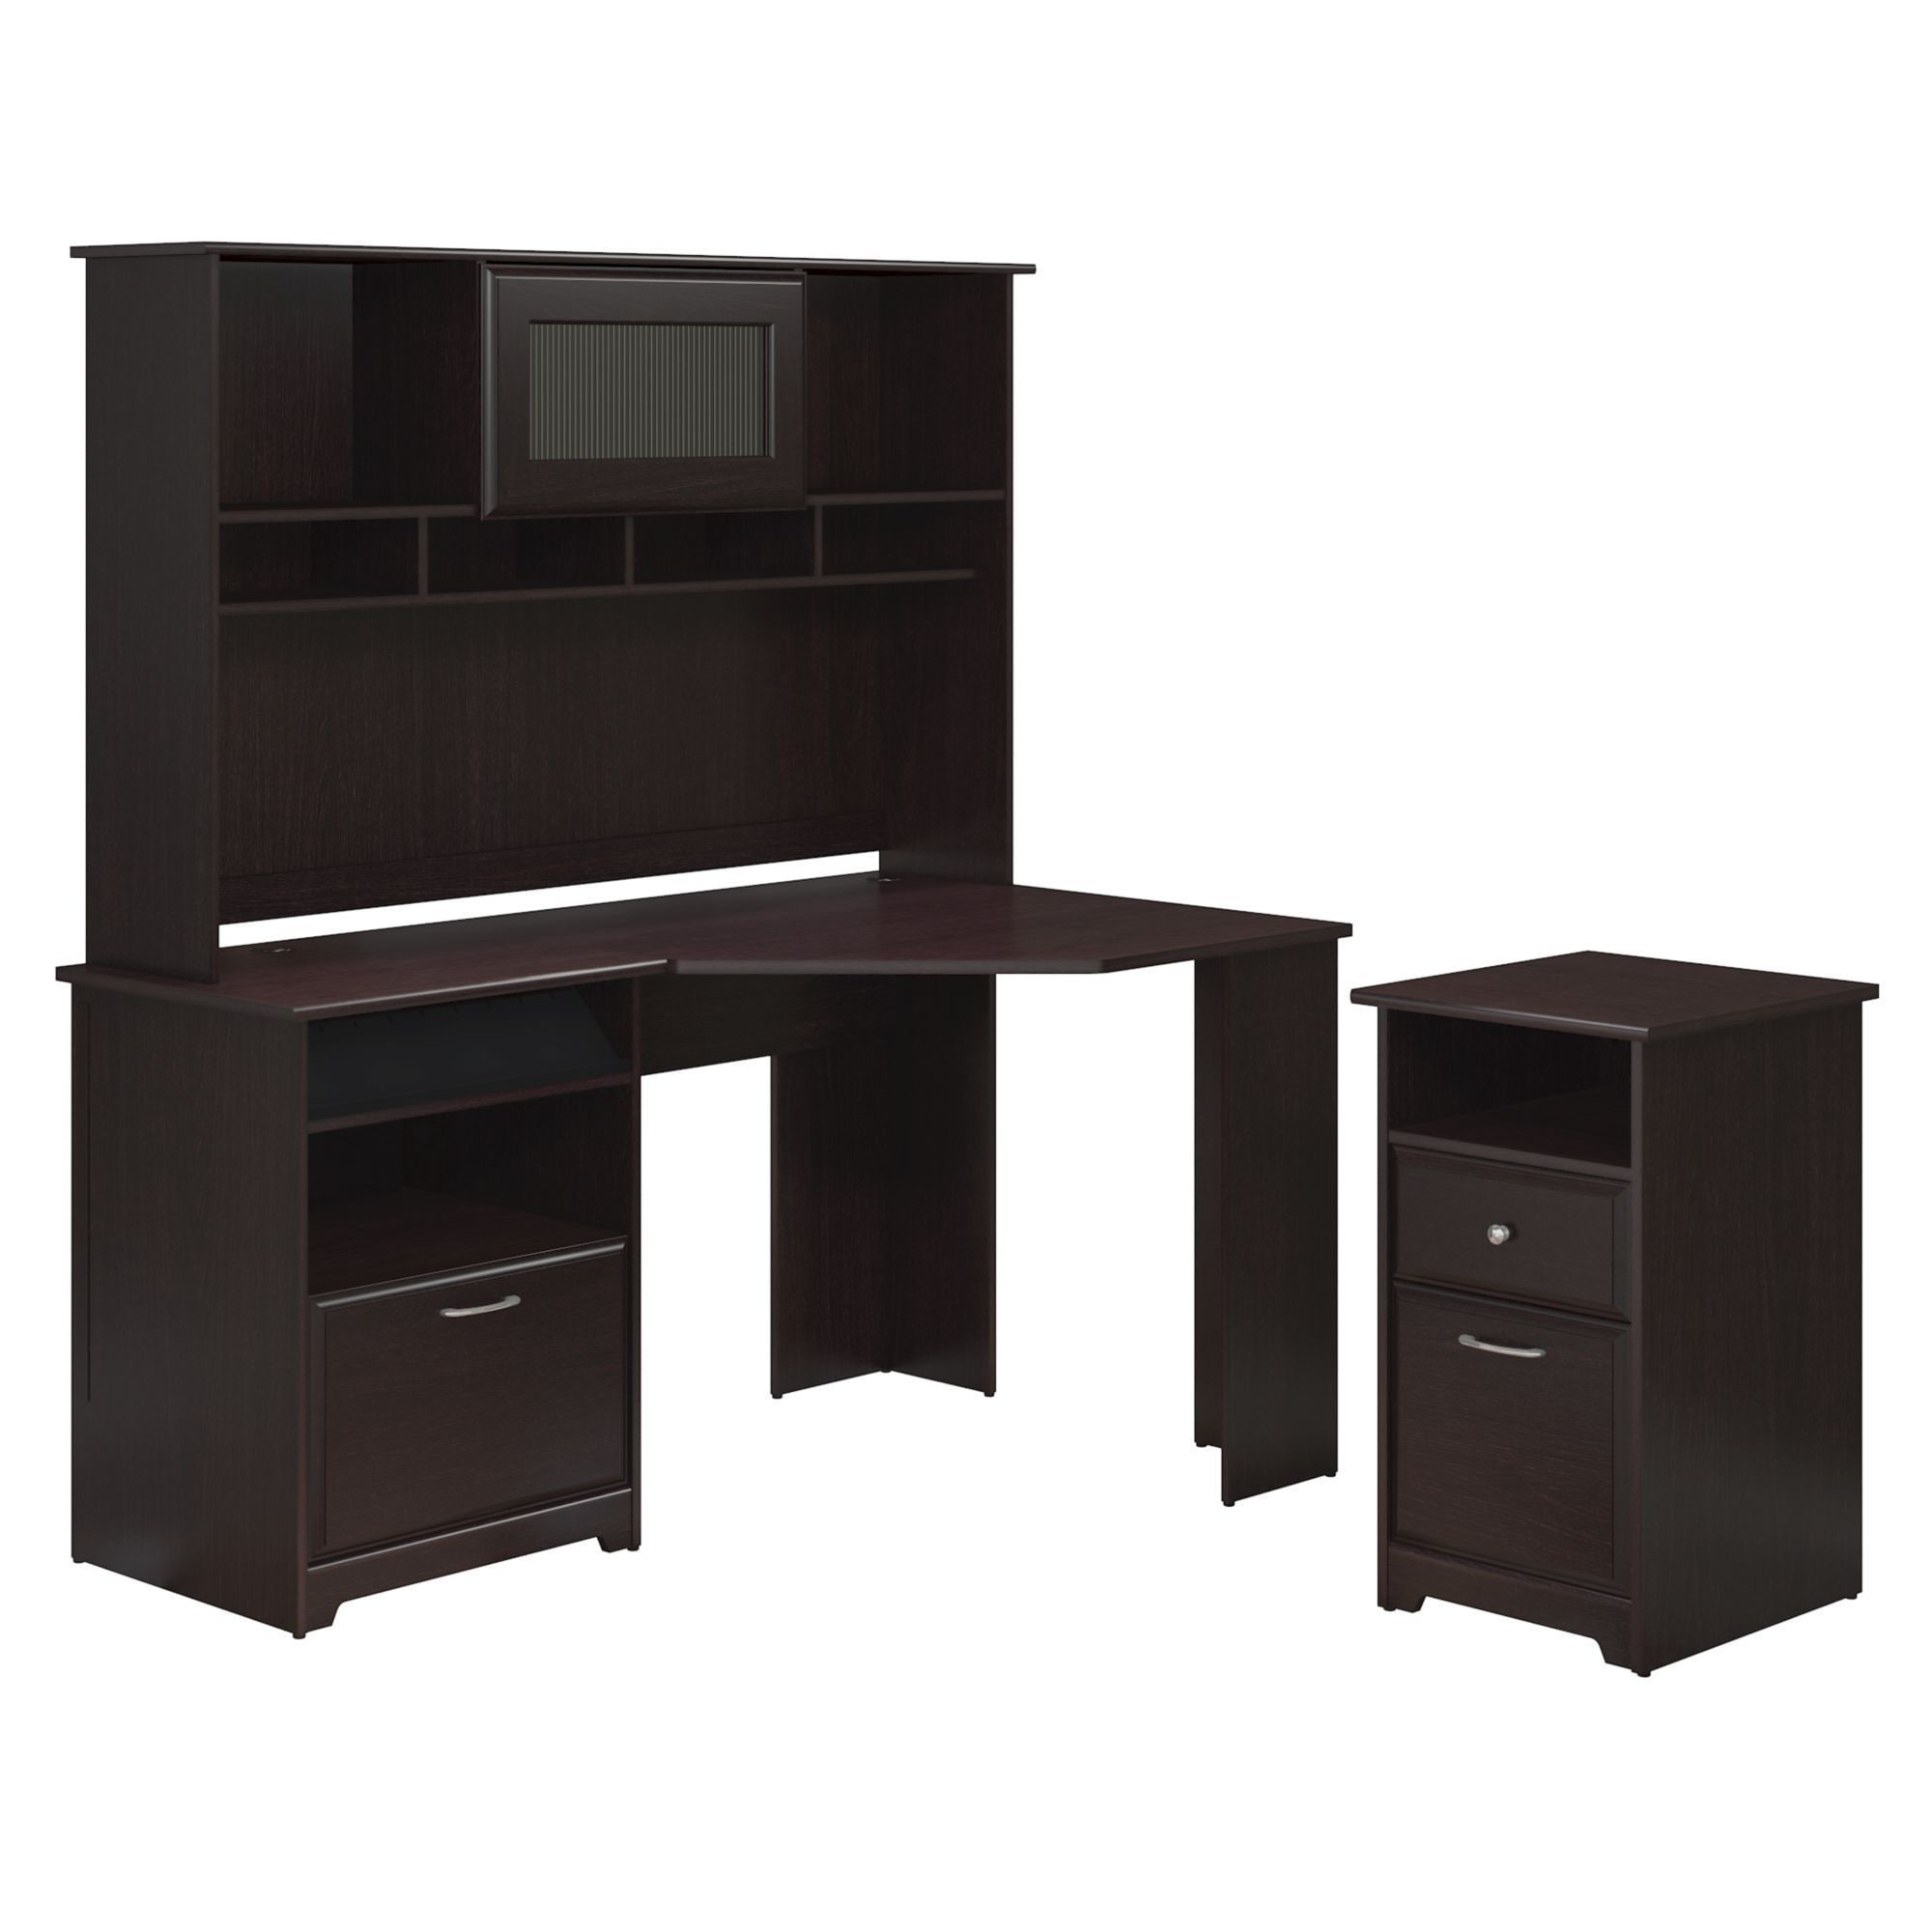 cabinet file free l printer stand overstock shaped shipping home bookcase with product desk today and achieve garden